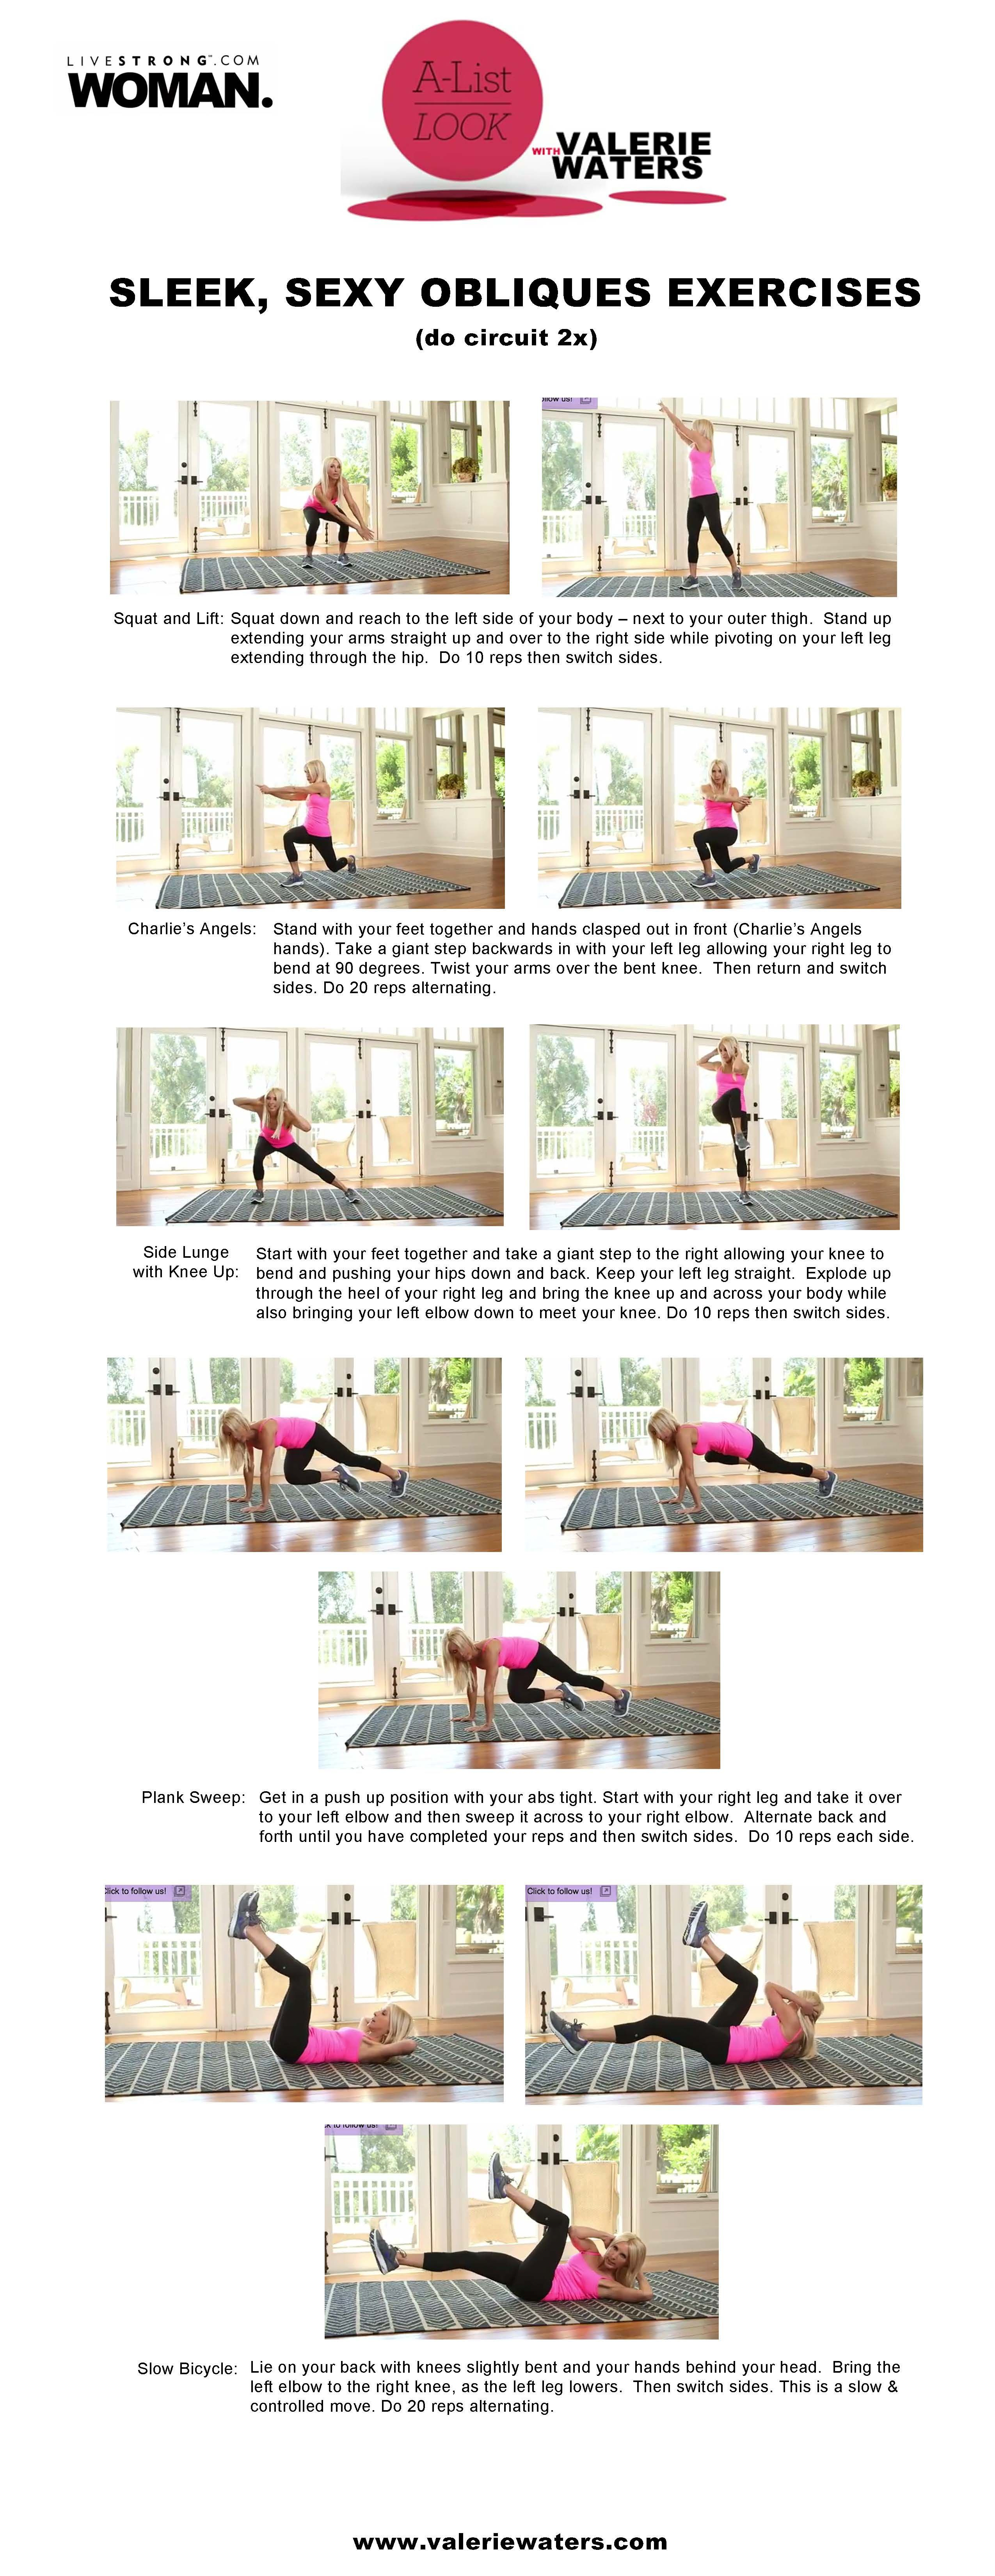 Sleeky Obliques Exercises Livestrong A List